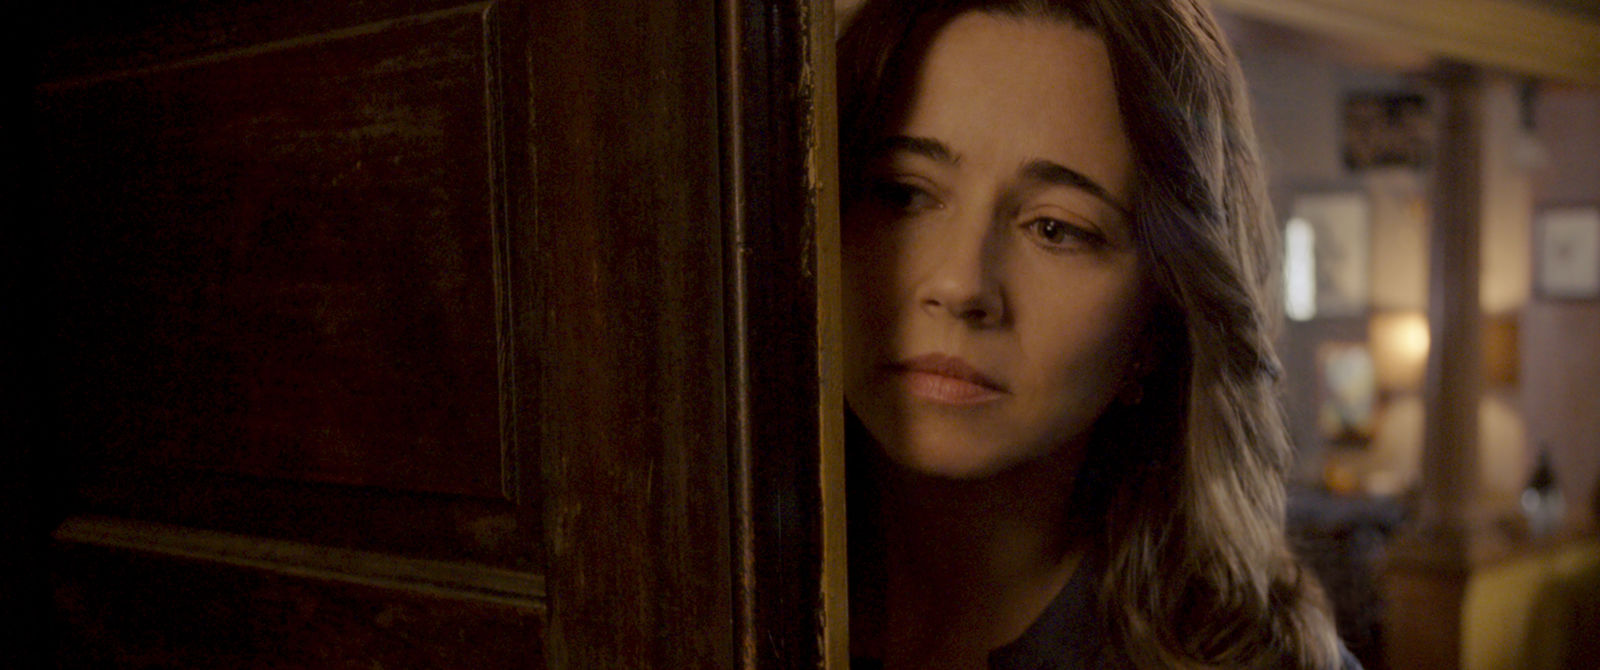 "LINDA CARDELLINI as Anna Tate-Garcia in New Line Cinema's horror film ""THE CURSE OF LA LLORONA,"" a Warner Bros. Pictures release. (Photo: Warner Bros.)"